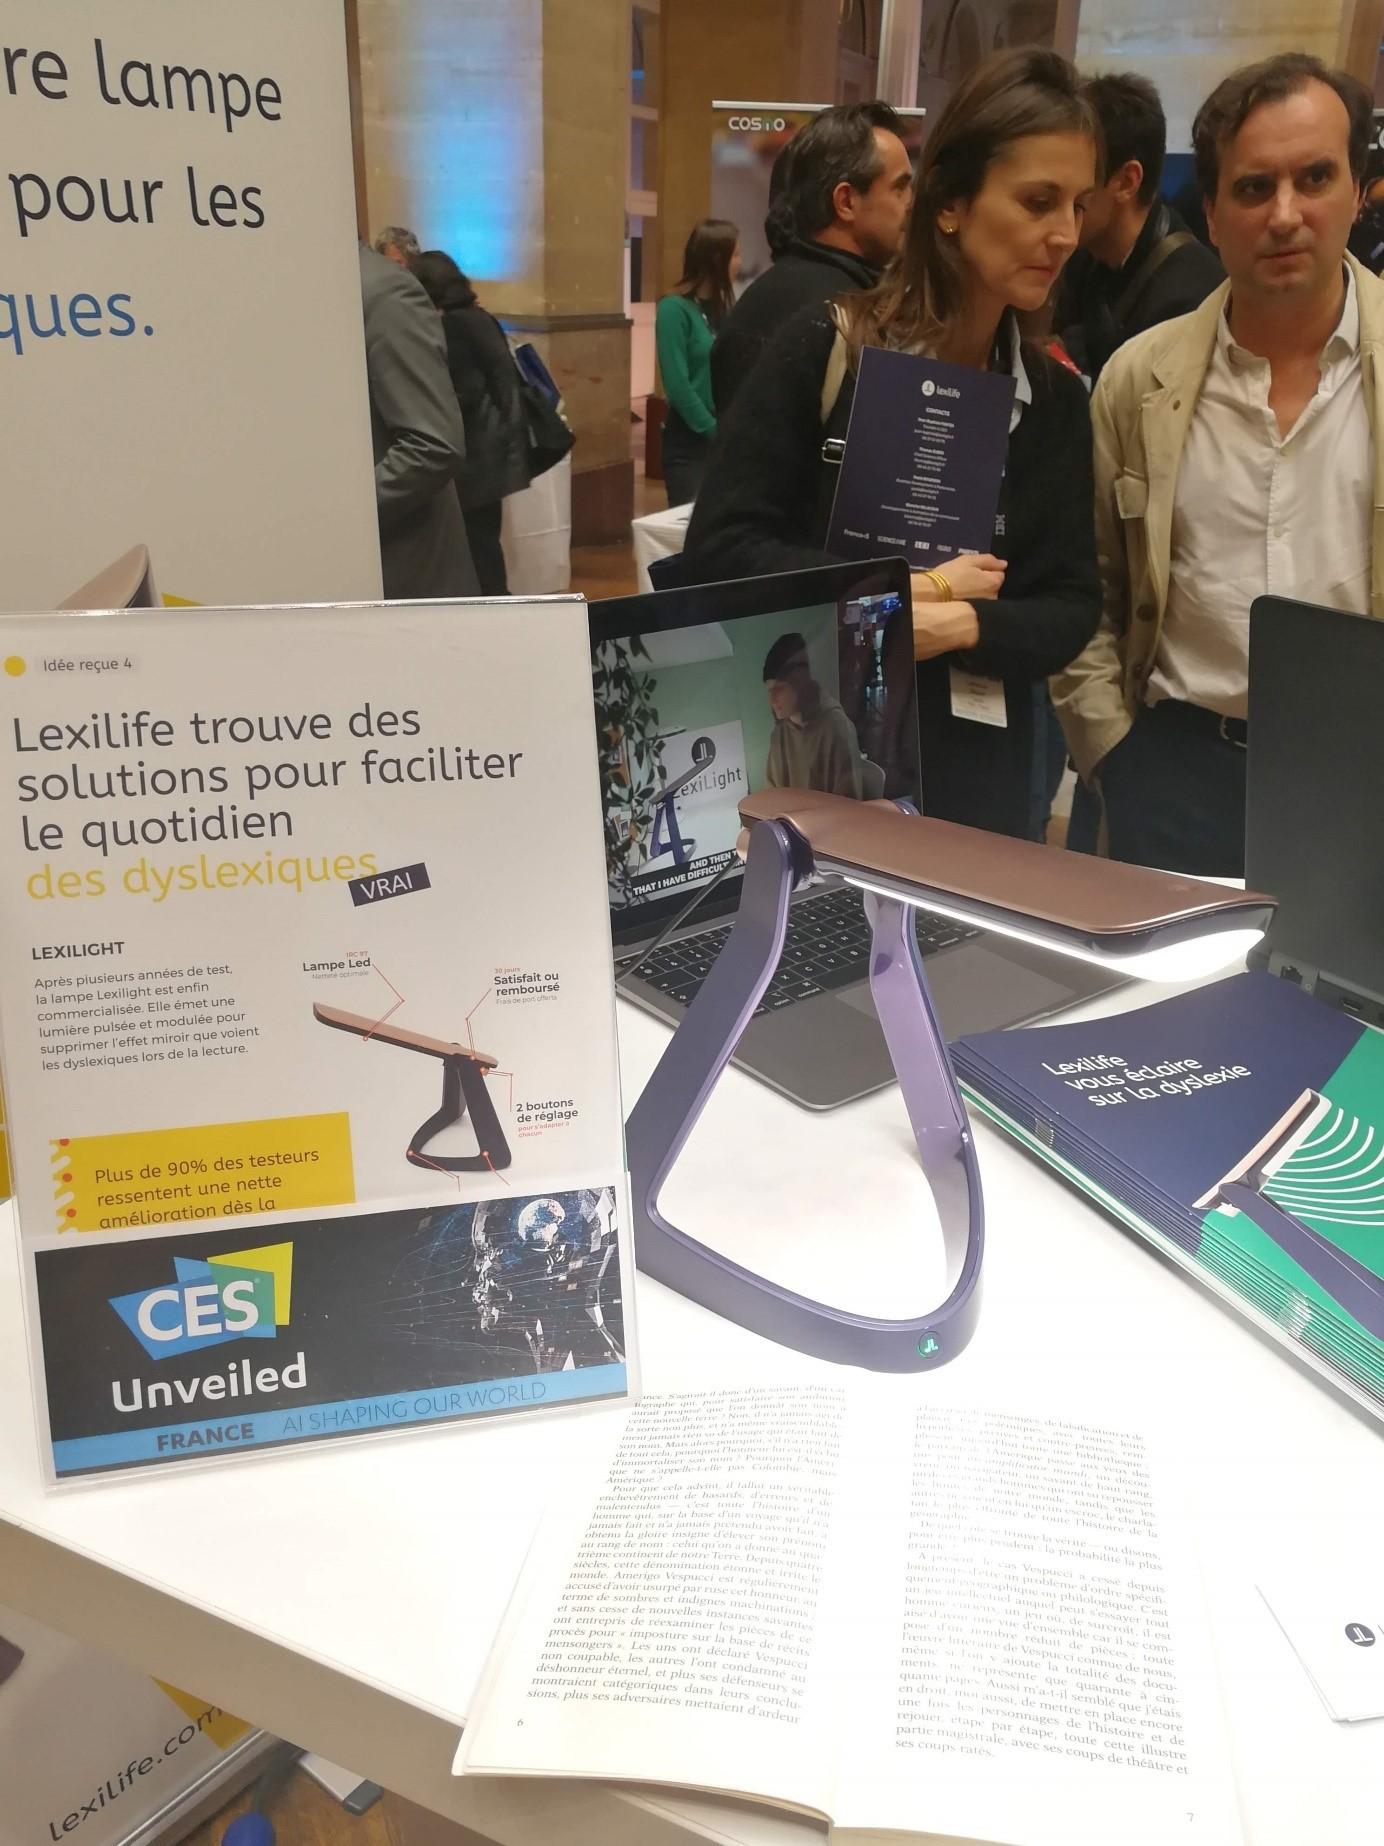 lexilight ces unveiled by VISEO